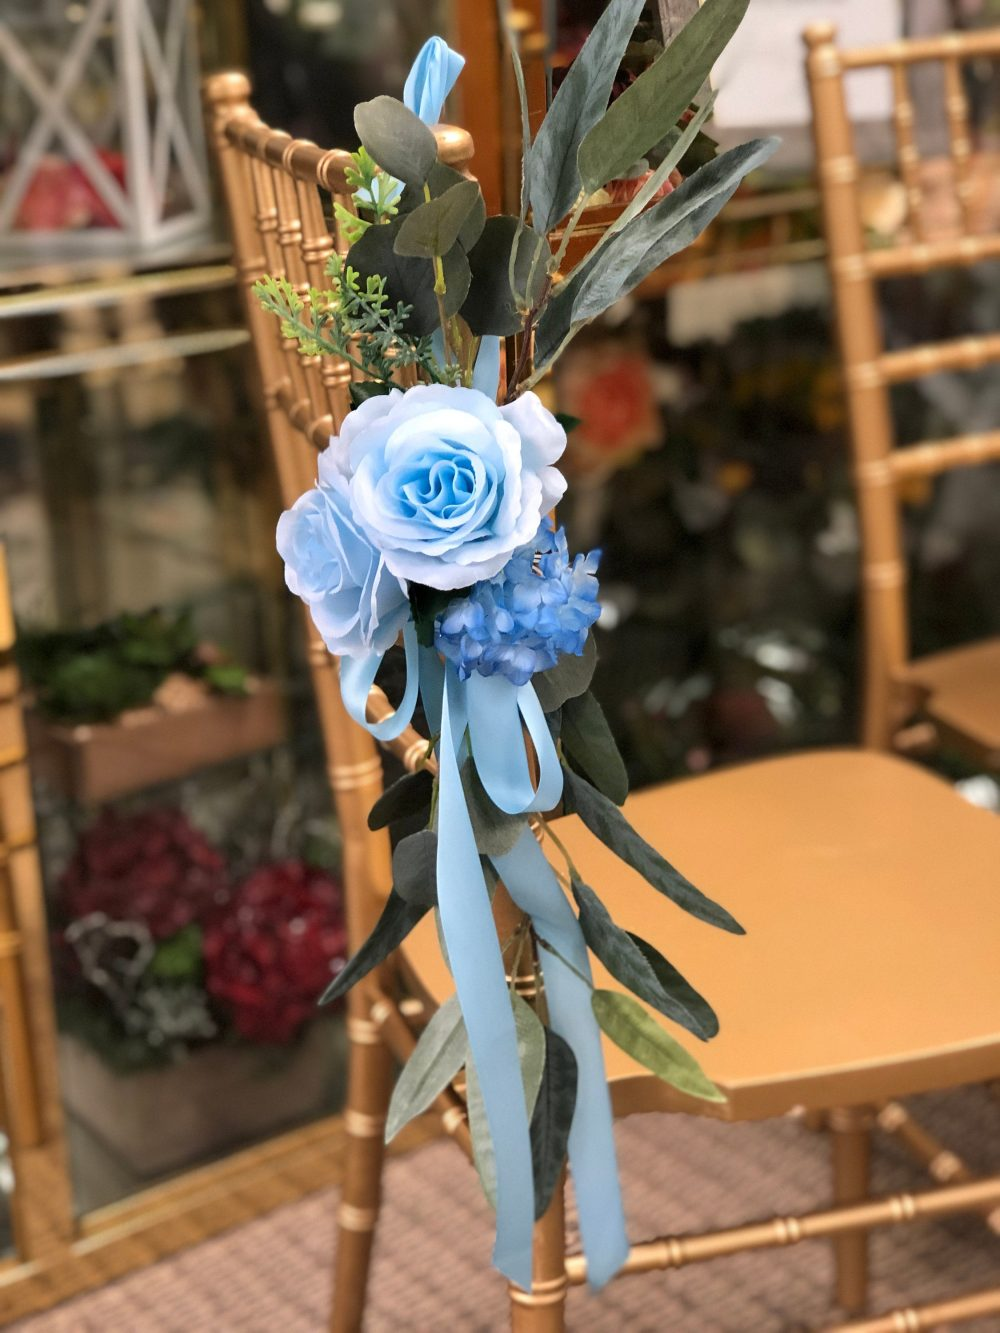 Aisle Maker Pew Chair Lantern Flower Rental Or Purchasing - Baby Blue With Eucalyptus Greenery